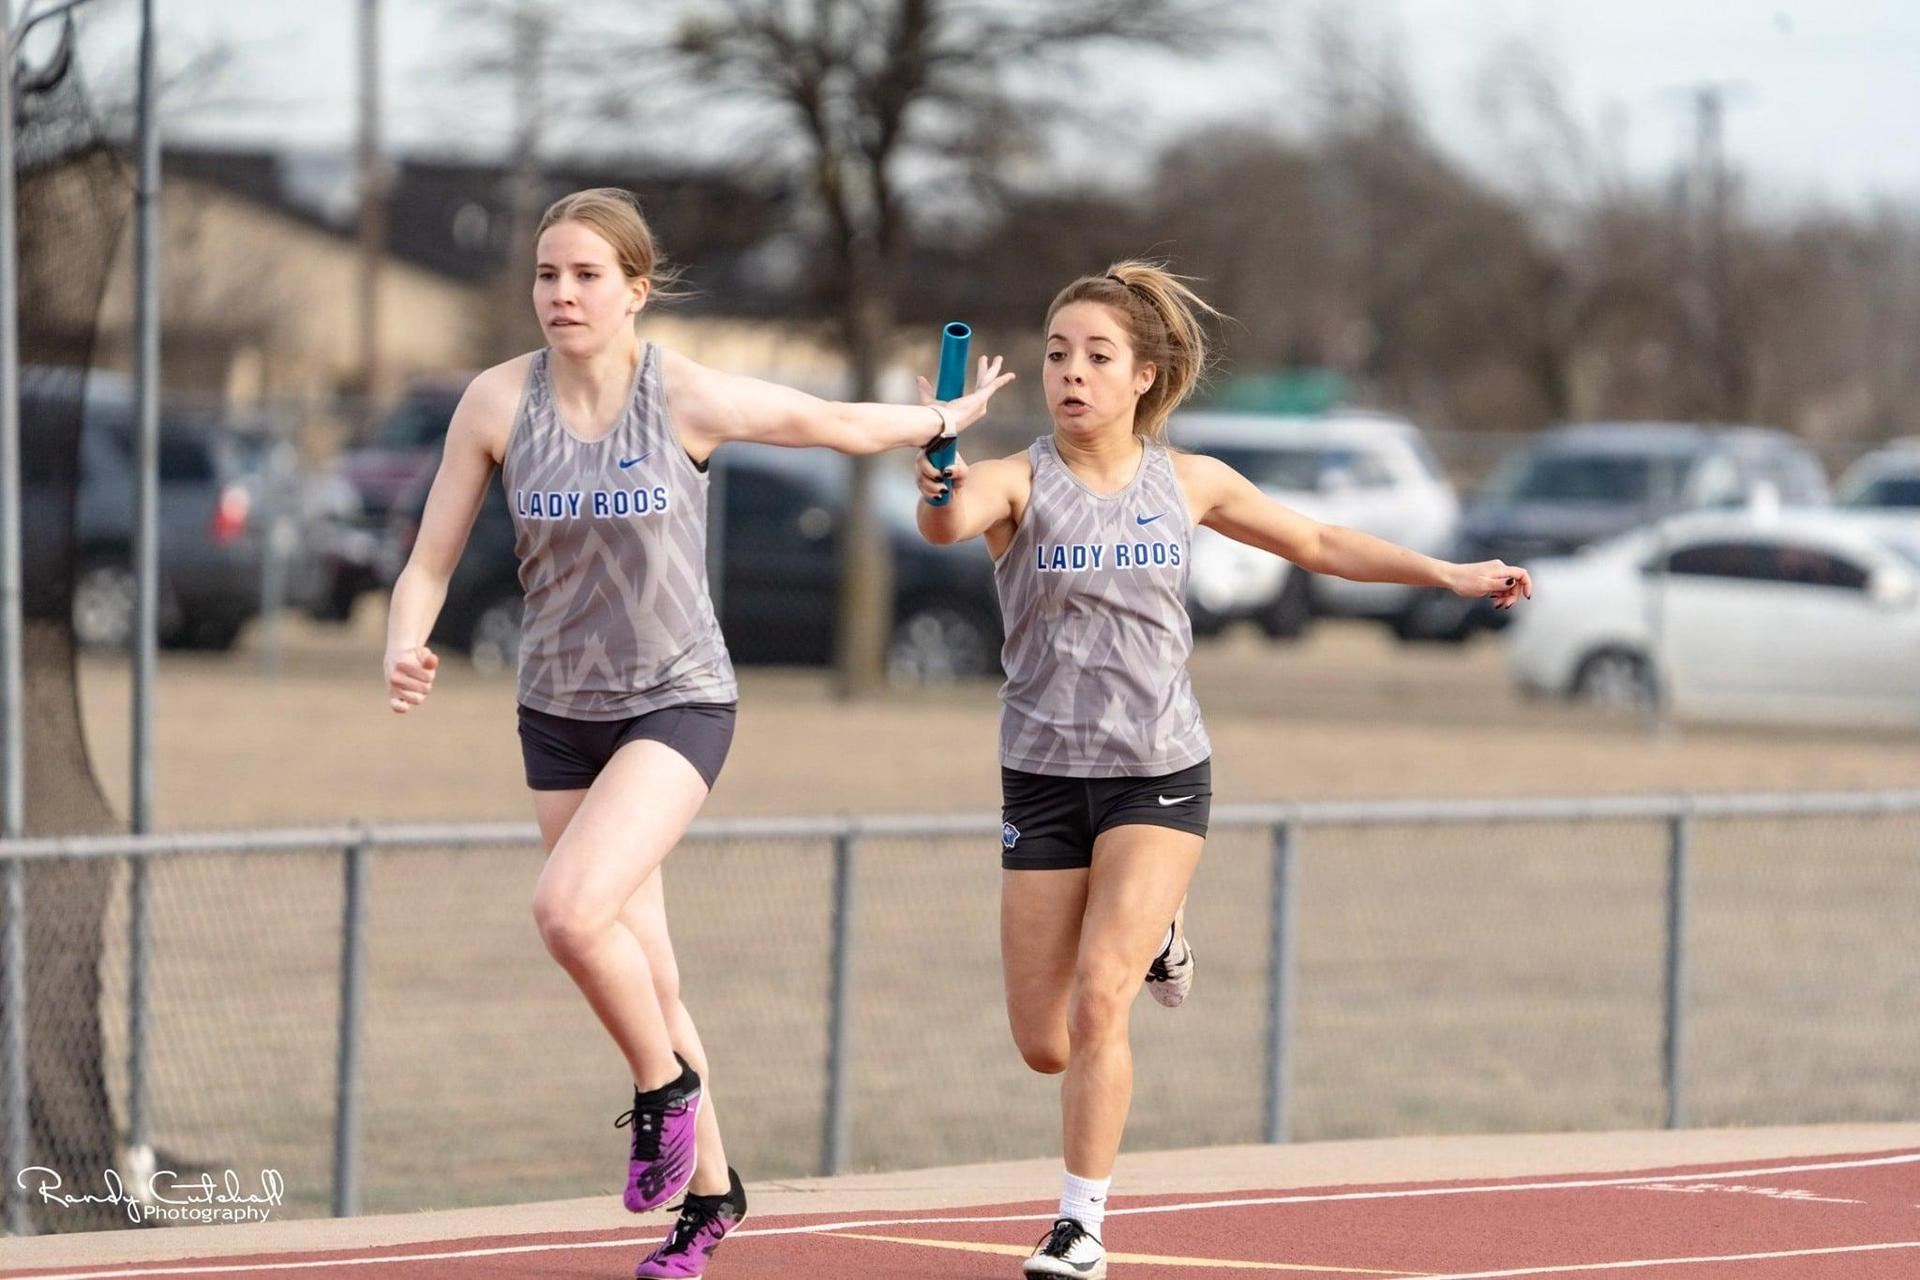 Lady Roos Passing the Baton During a Relay